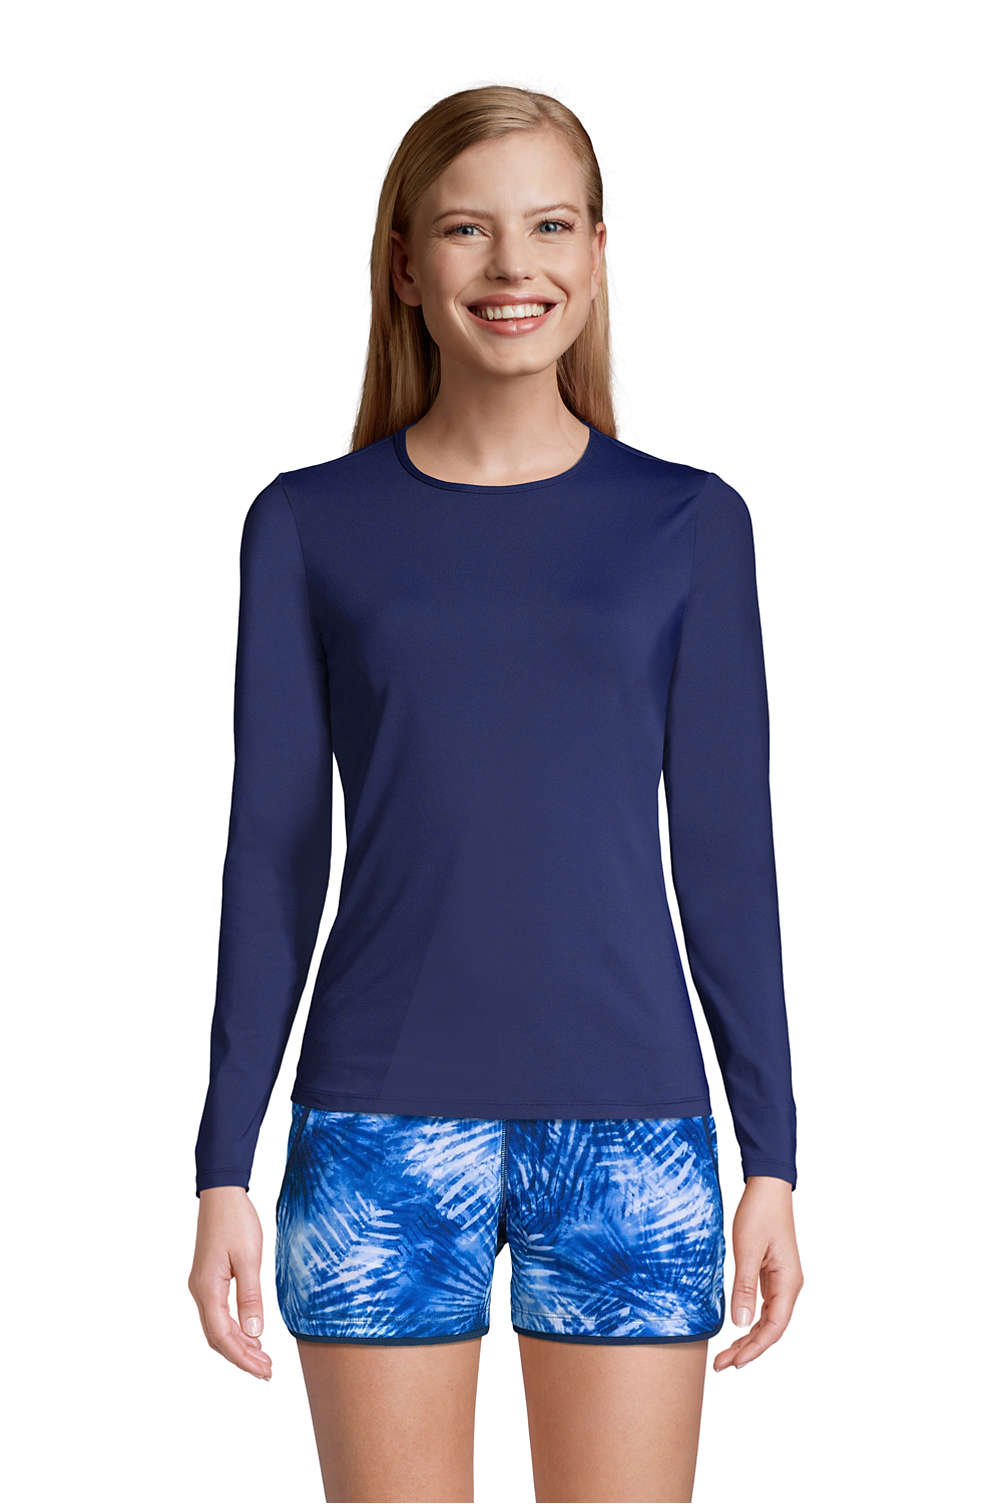 a5d506c0fbfb8 Women s Swim Tee Rash Guard from Lands  End